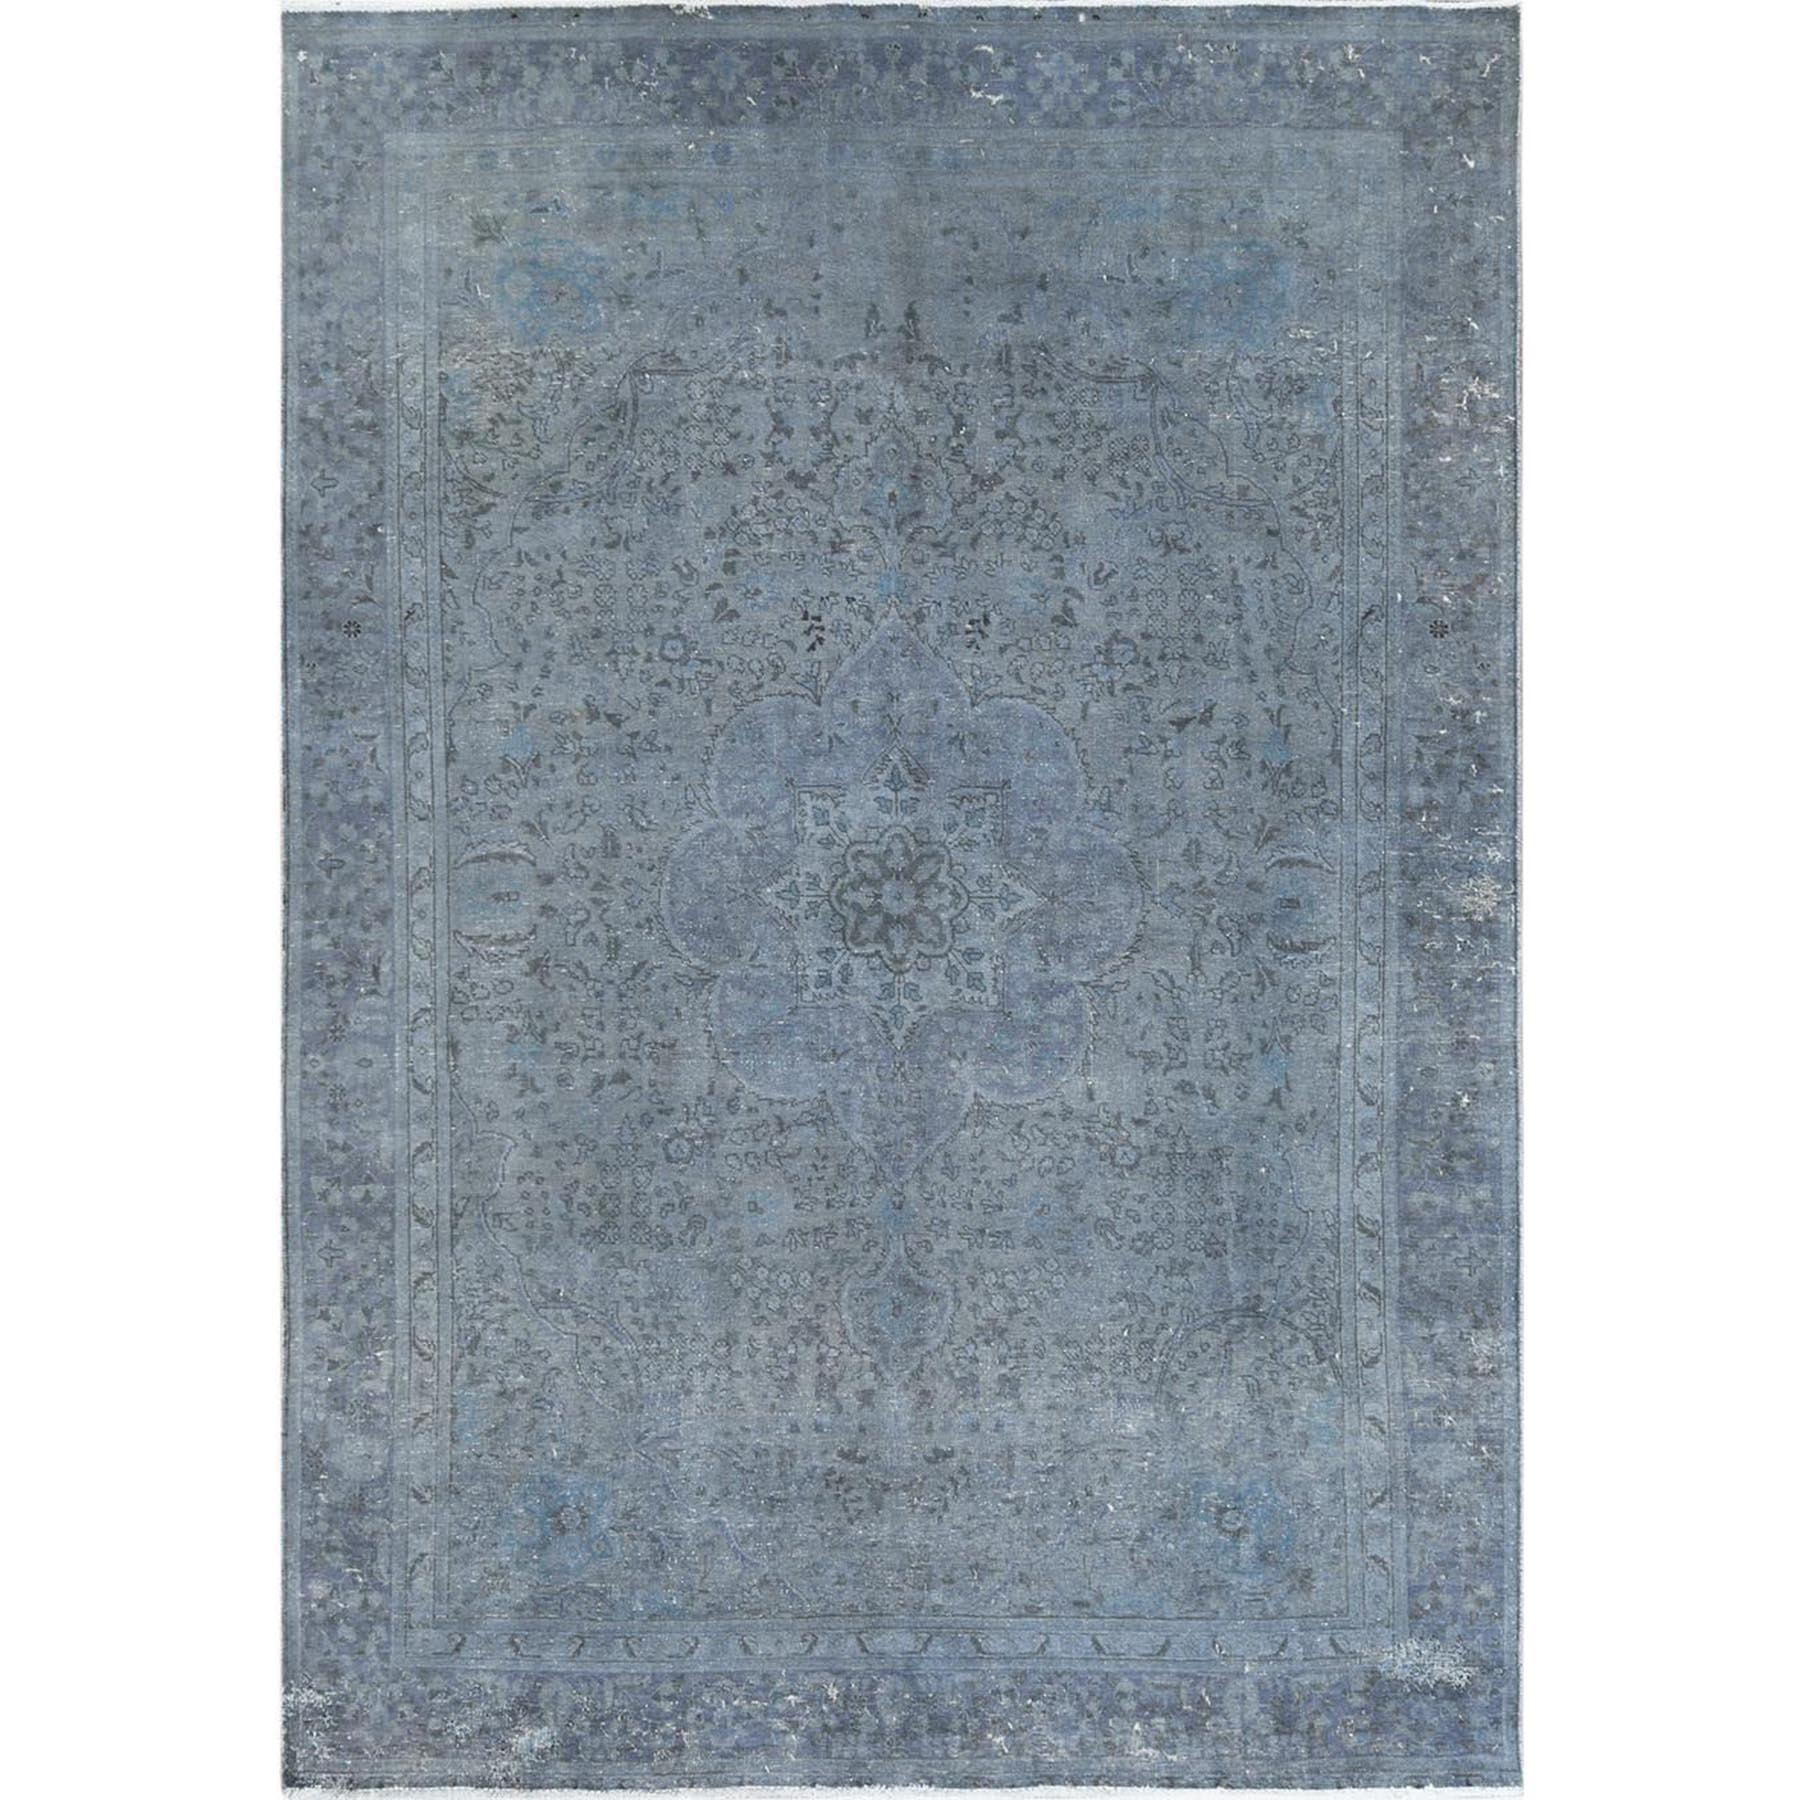 Fetneh Collection And Vintage Overdyed Collection Hand Knotted Grey Rug No: 1122620